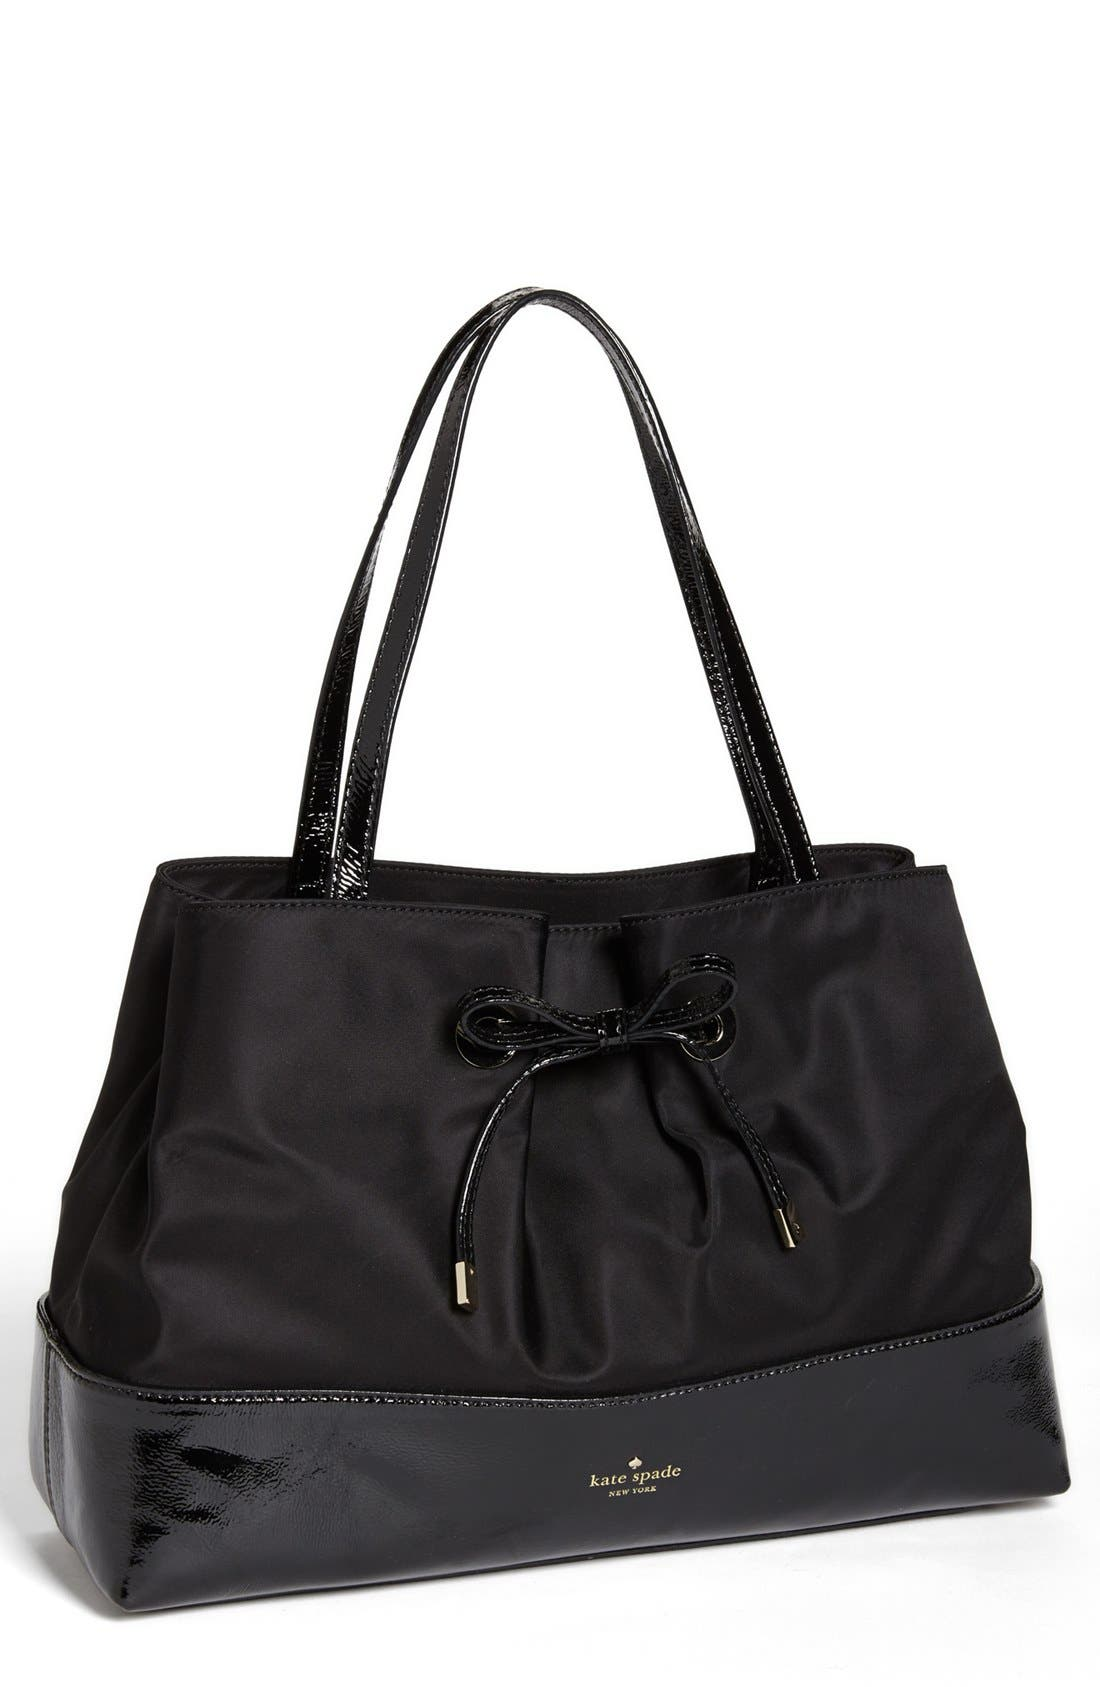 Alternate Image 1 Selected - kate spade new york 'west valley - maryanne' shoulder bag